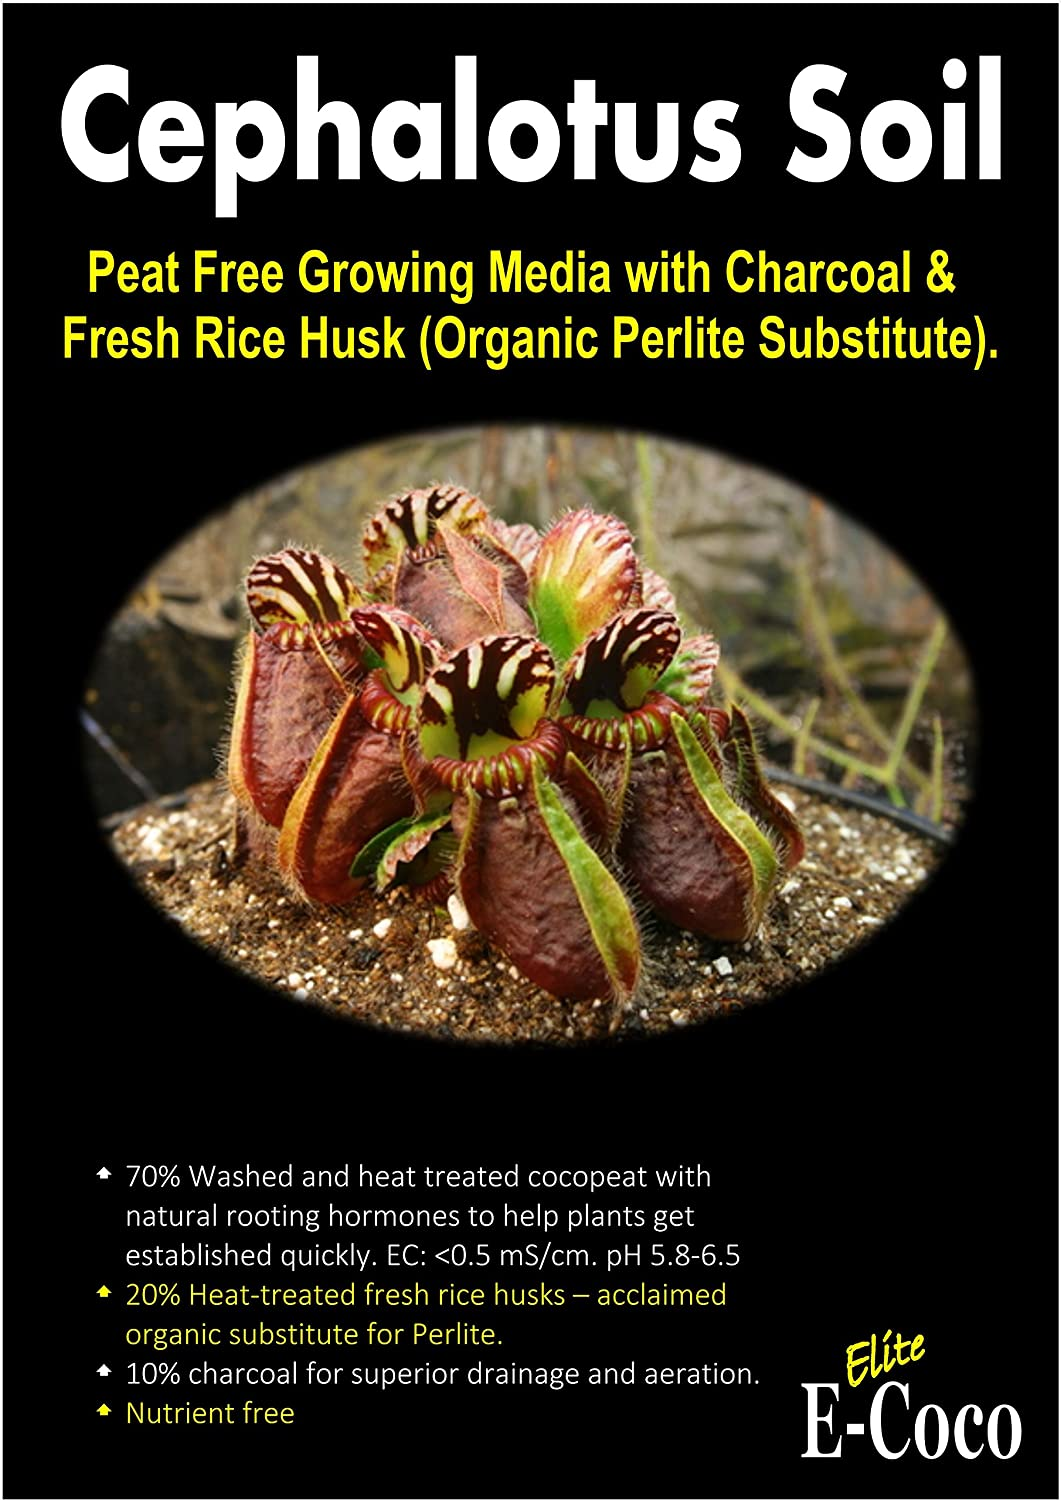 CEPHALOTUS FOLLICULARIS CARNIVOROUS PLANT COMPOST, SOIL with CHARCOAL FOR PITCHER TYPE - READY TO USE (1 LITRE) E-COCO PRODUCTS UK